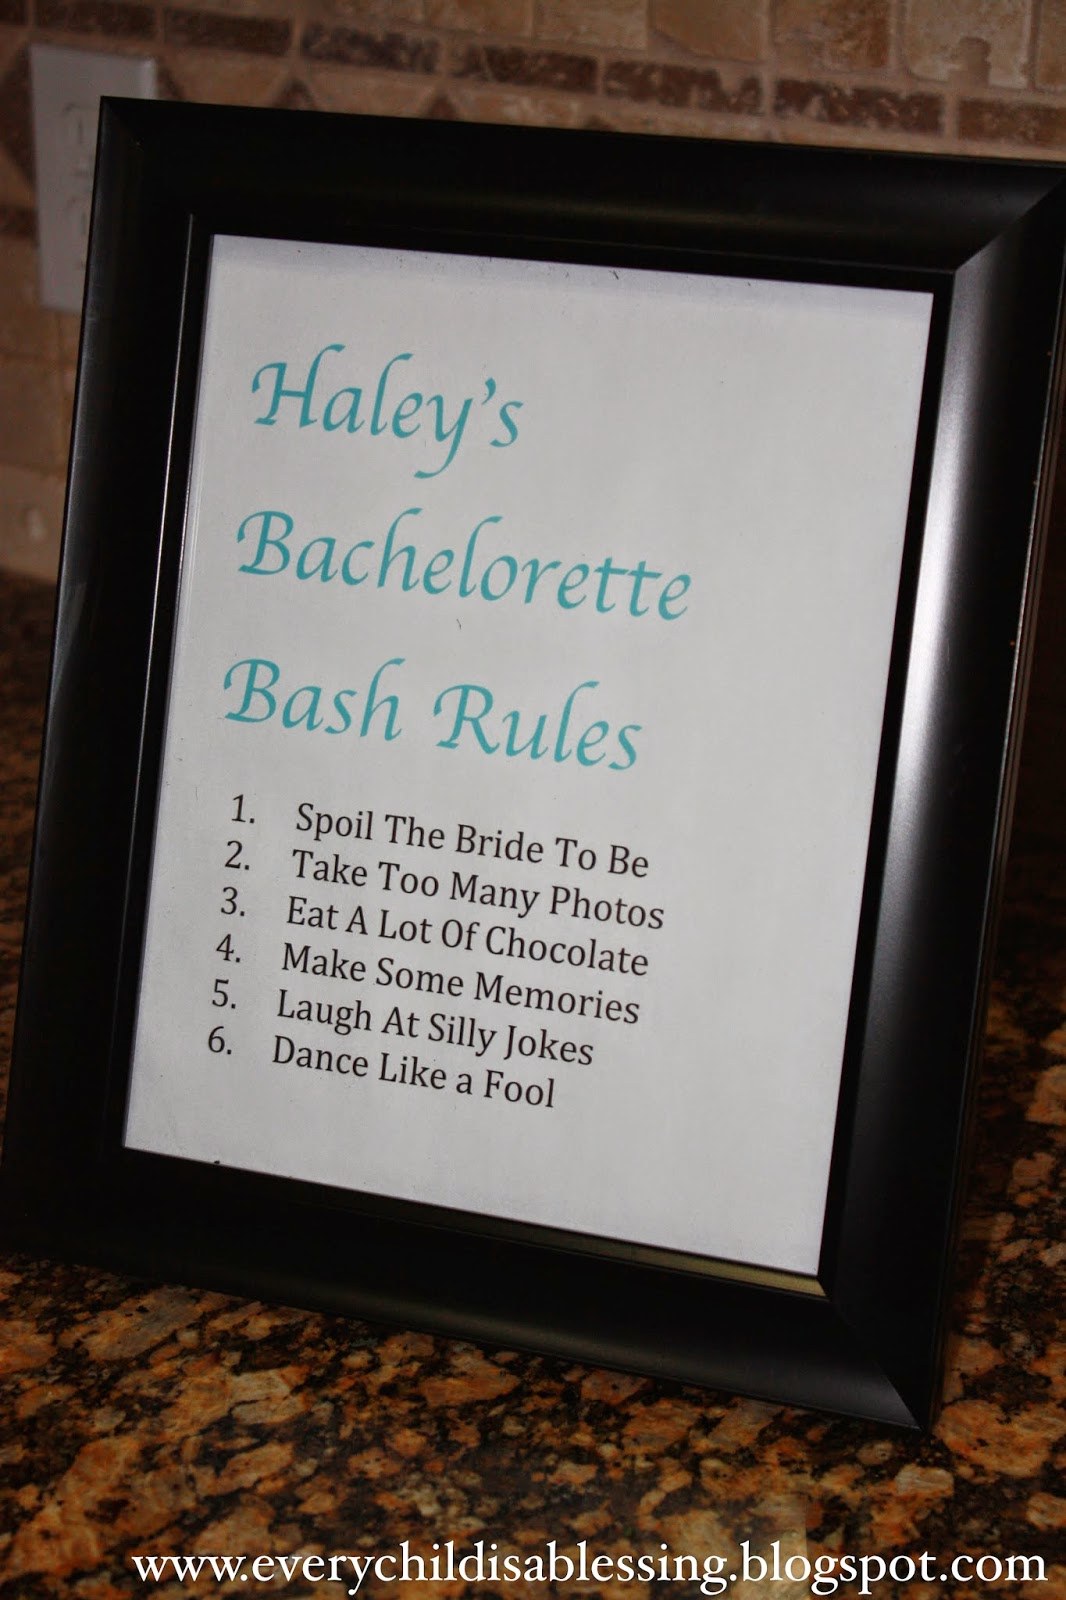 Scrapbook ideas many pictures - Scrapbook Ideas Many Pictures Hen Night Scrapbook Ideas Img_4558 Jpg 1066 1600 Bachelorette Pinterest Something